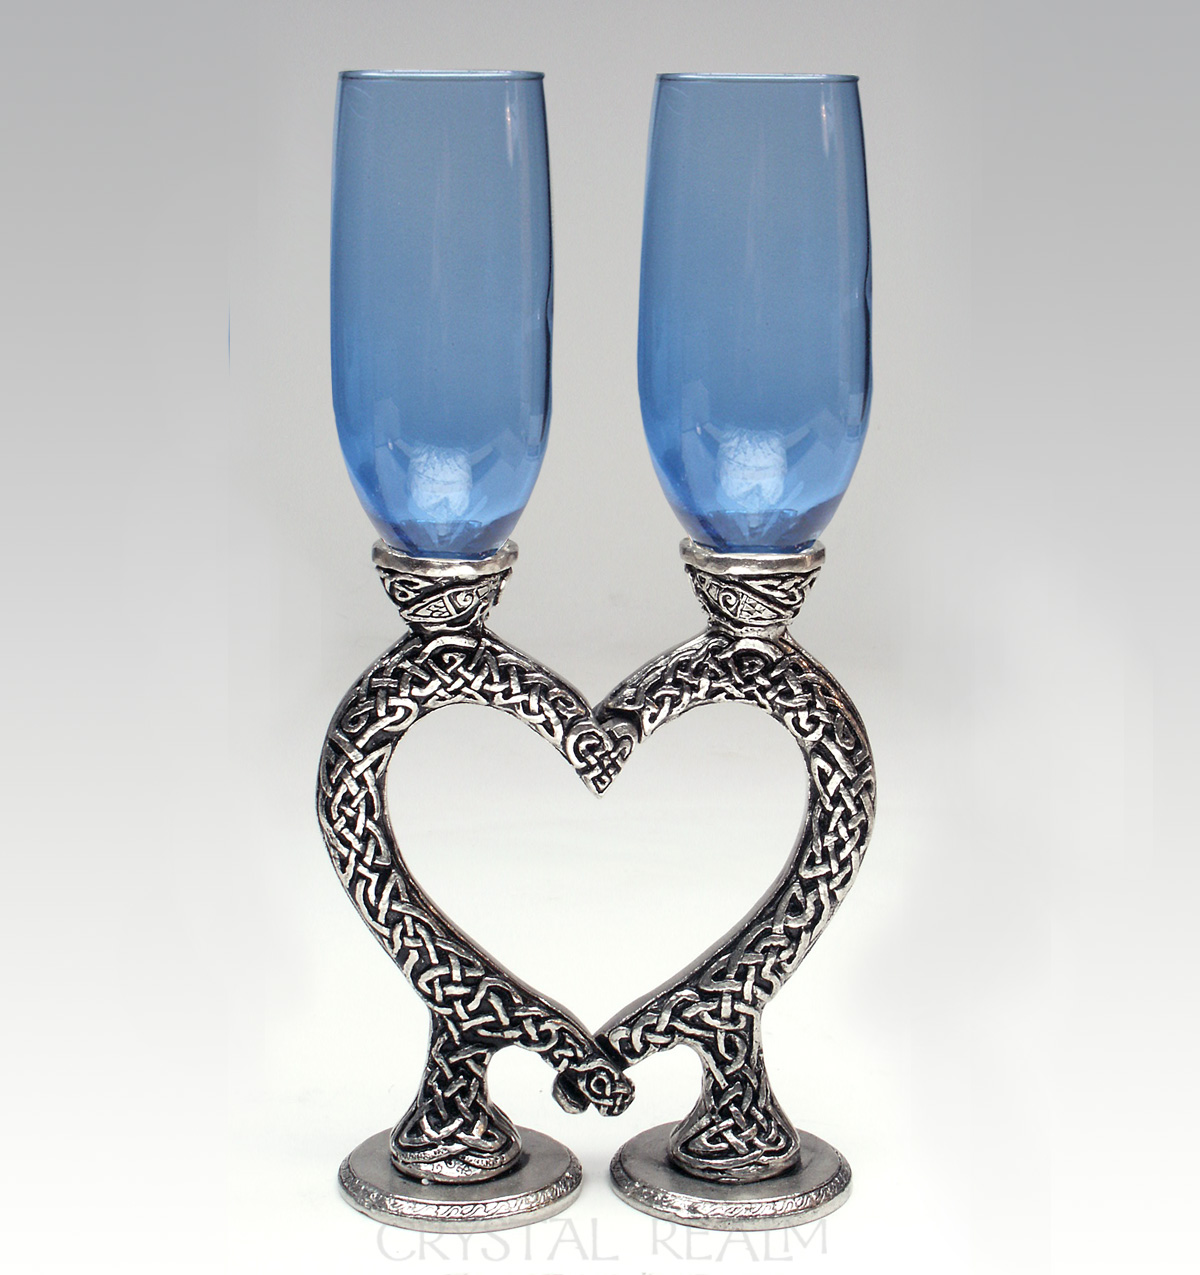 Sapphire blue toasting glasses with Celtic heart stems